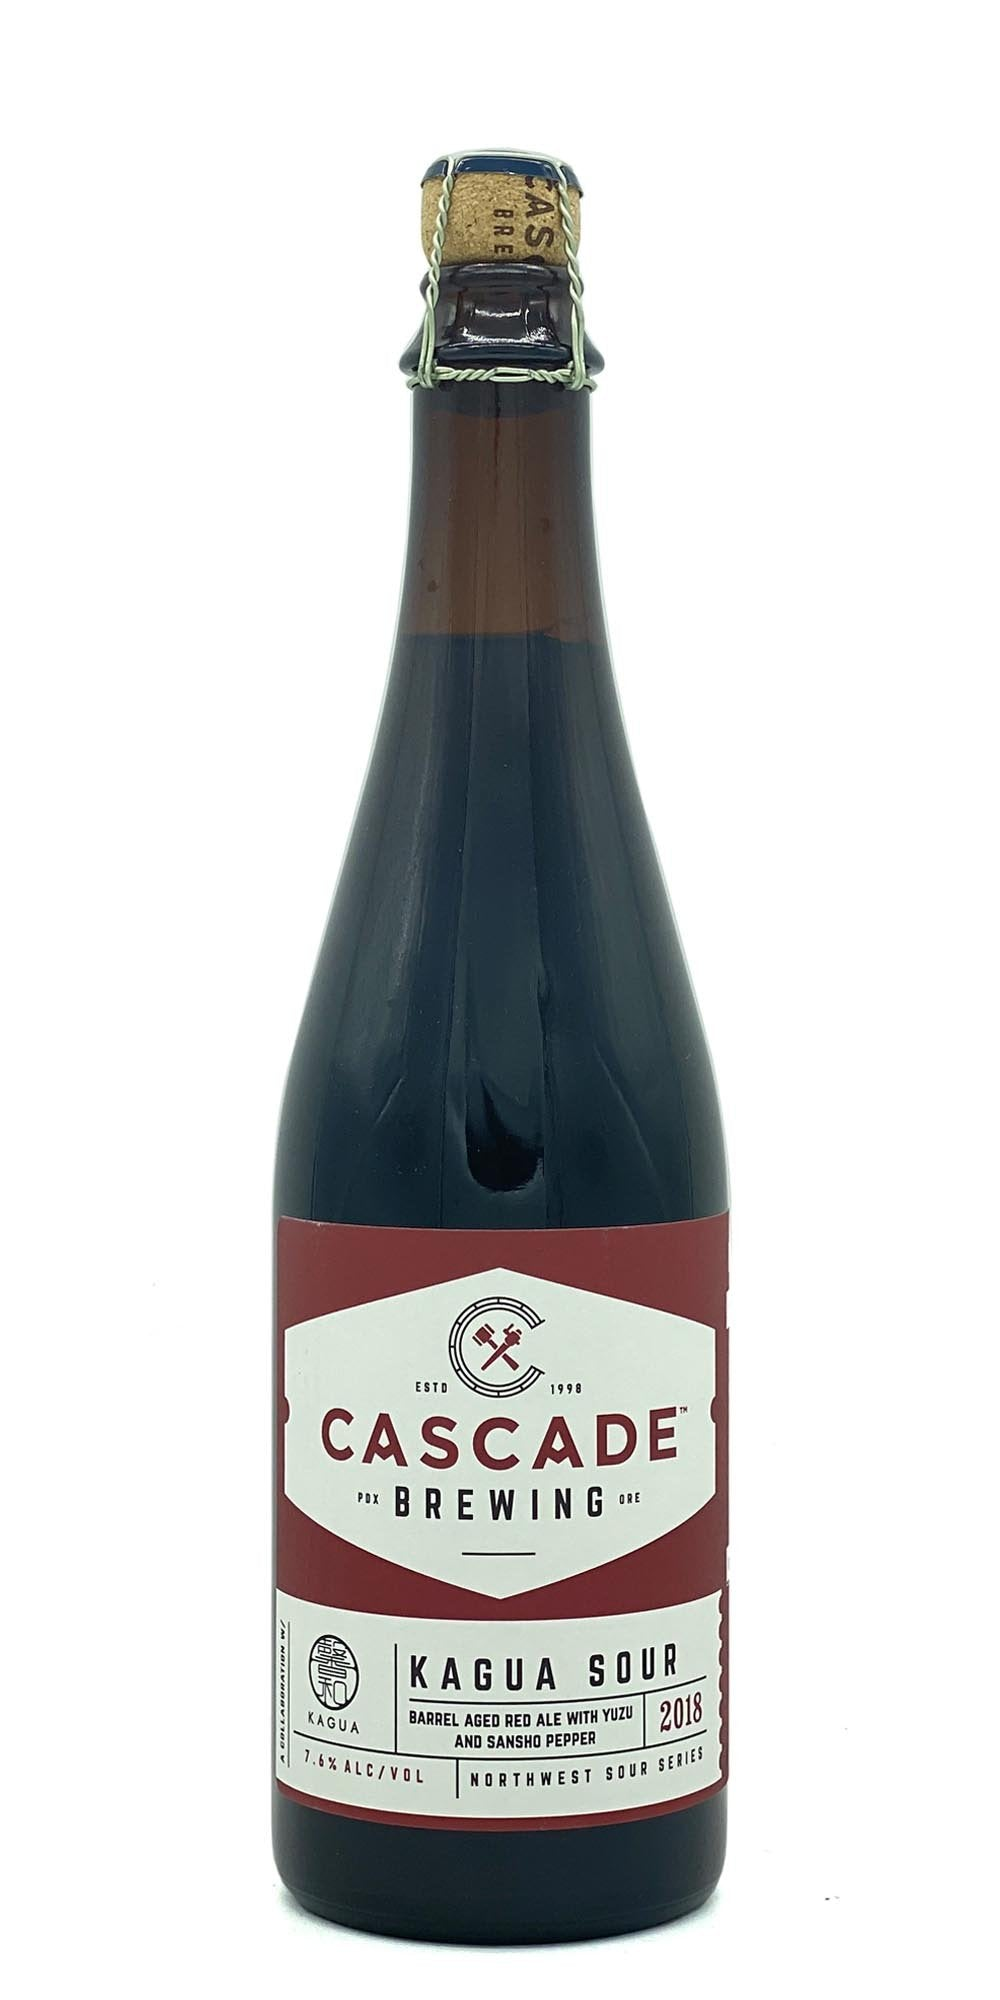 Cascade Brewing / Far Yeast Brewing - Kagua Sour  2018 - Drikbeer - Order Craft Beer Online